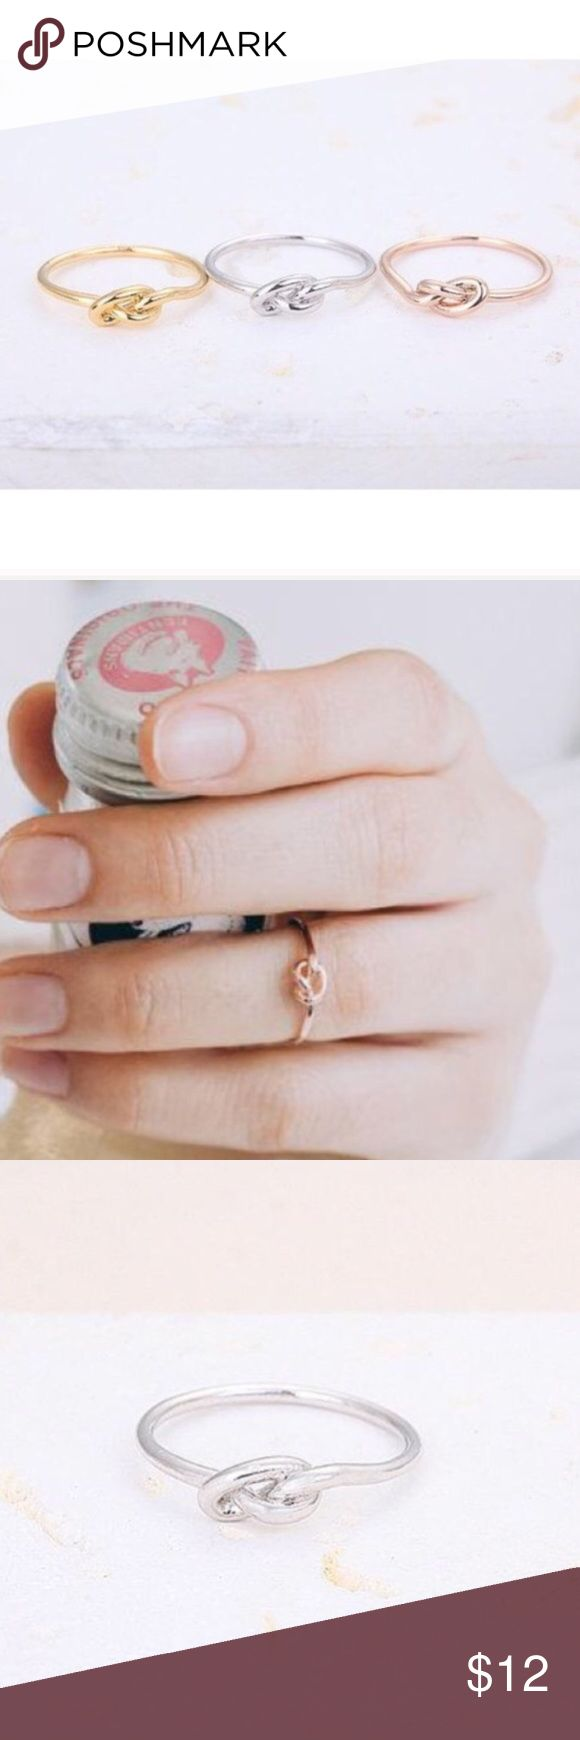 "Tie The Knot Ring Dainty ""tie the knot"" ring perfect for a bachelorette party, bride to be, or just to treat yourself because its adorable. Knot design. Main Material: Zinc Alloy metals. 18k gold plaited. Lead and nickel FREE. Size:6.5. 18k Gold ONLY available !  ❁ Click ""Add to Bundle"" to add more items in my closet or ""Buy"" to checkout here. ❁ ↓Follow my closet on Instagram ↓                       @xosamscloset ❁↓Check out my pins↓  www.shopsailorvirgo.storenvy.com Jewelry Rings"